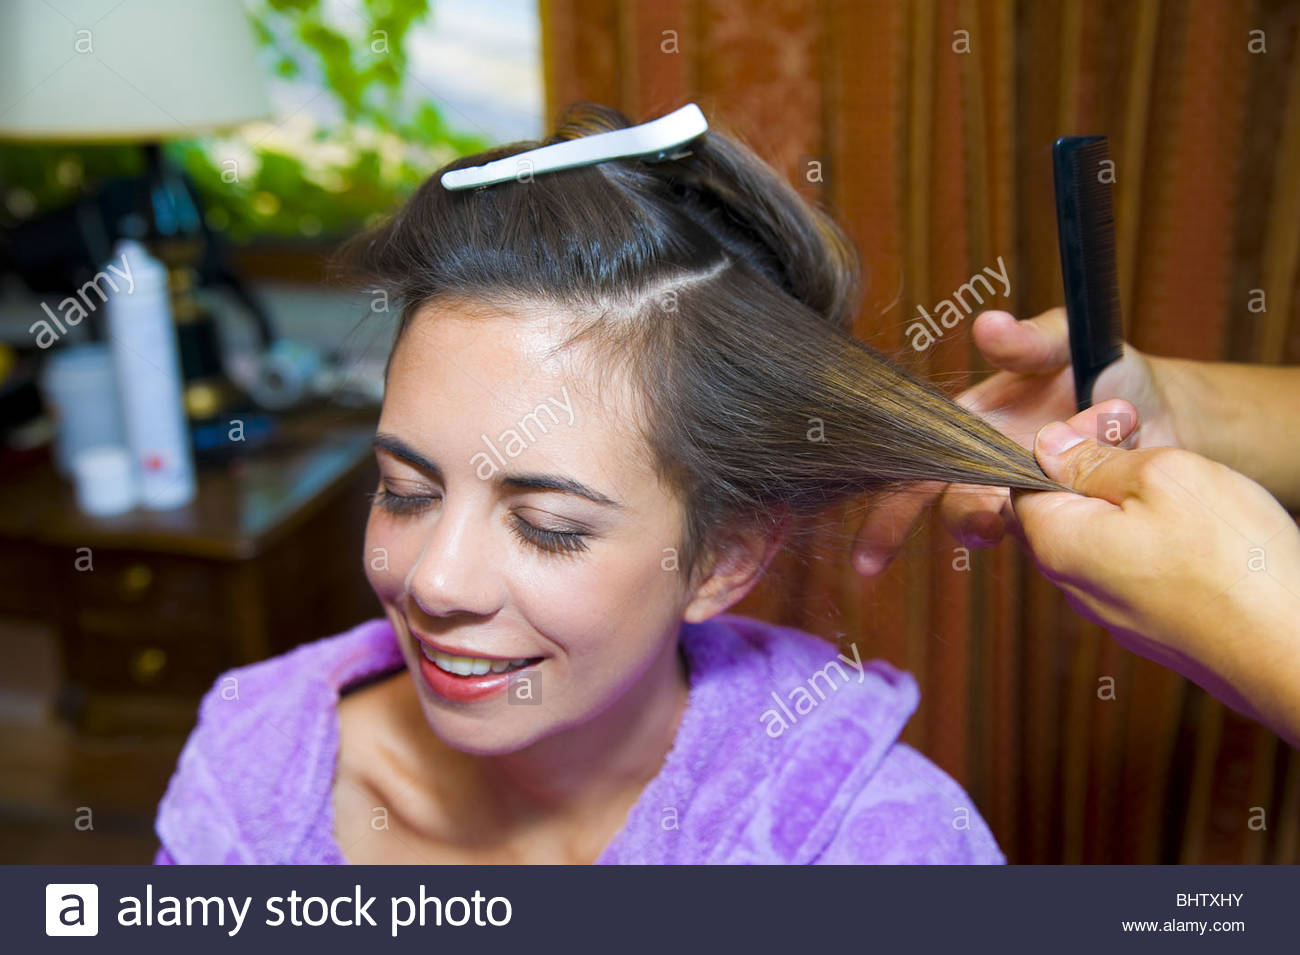 Woman at a salon during hair styling - Stock Image